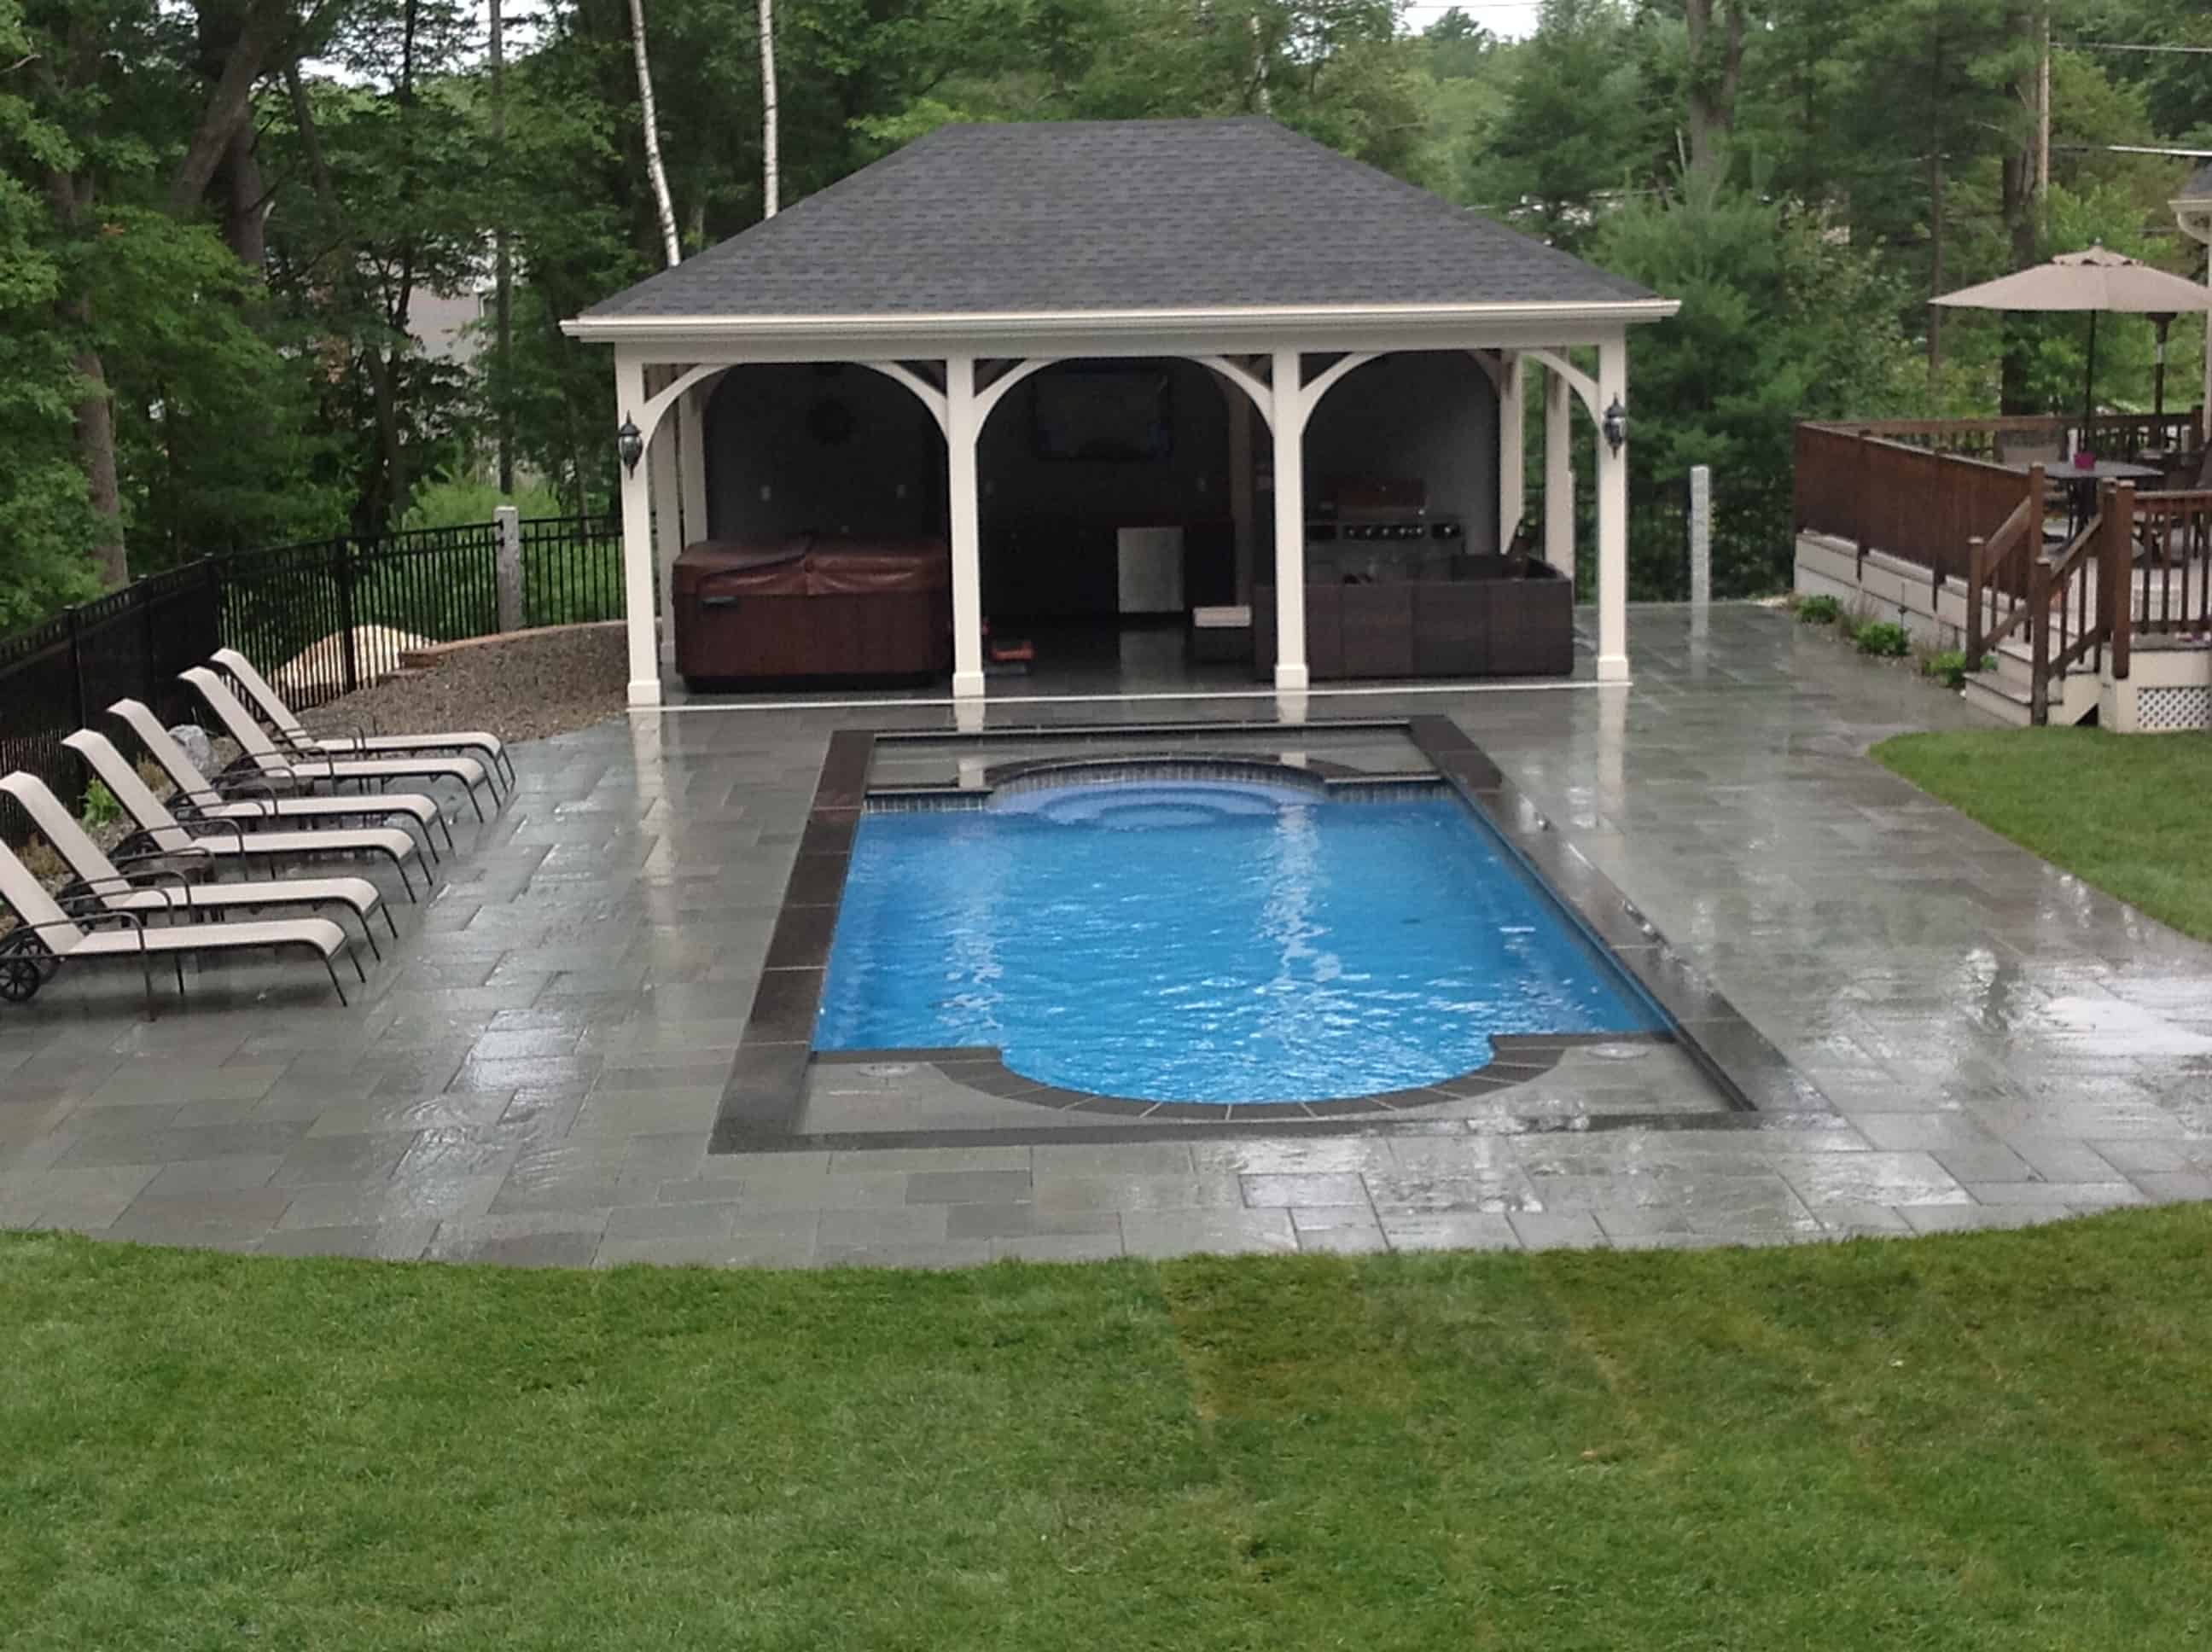 Hardscaped area around and Inground Pool